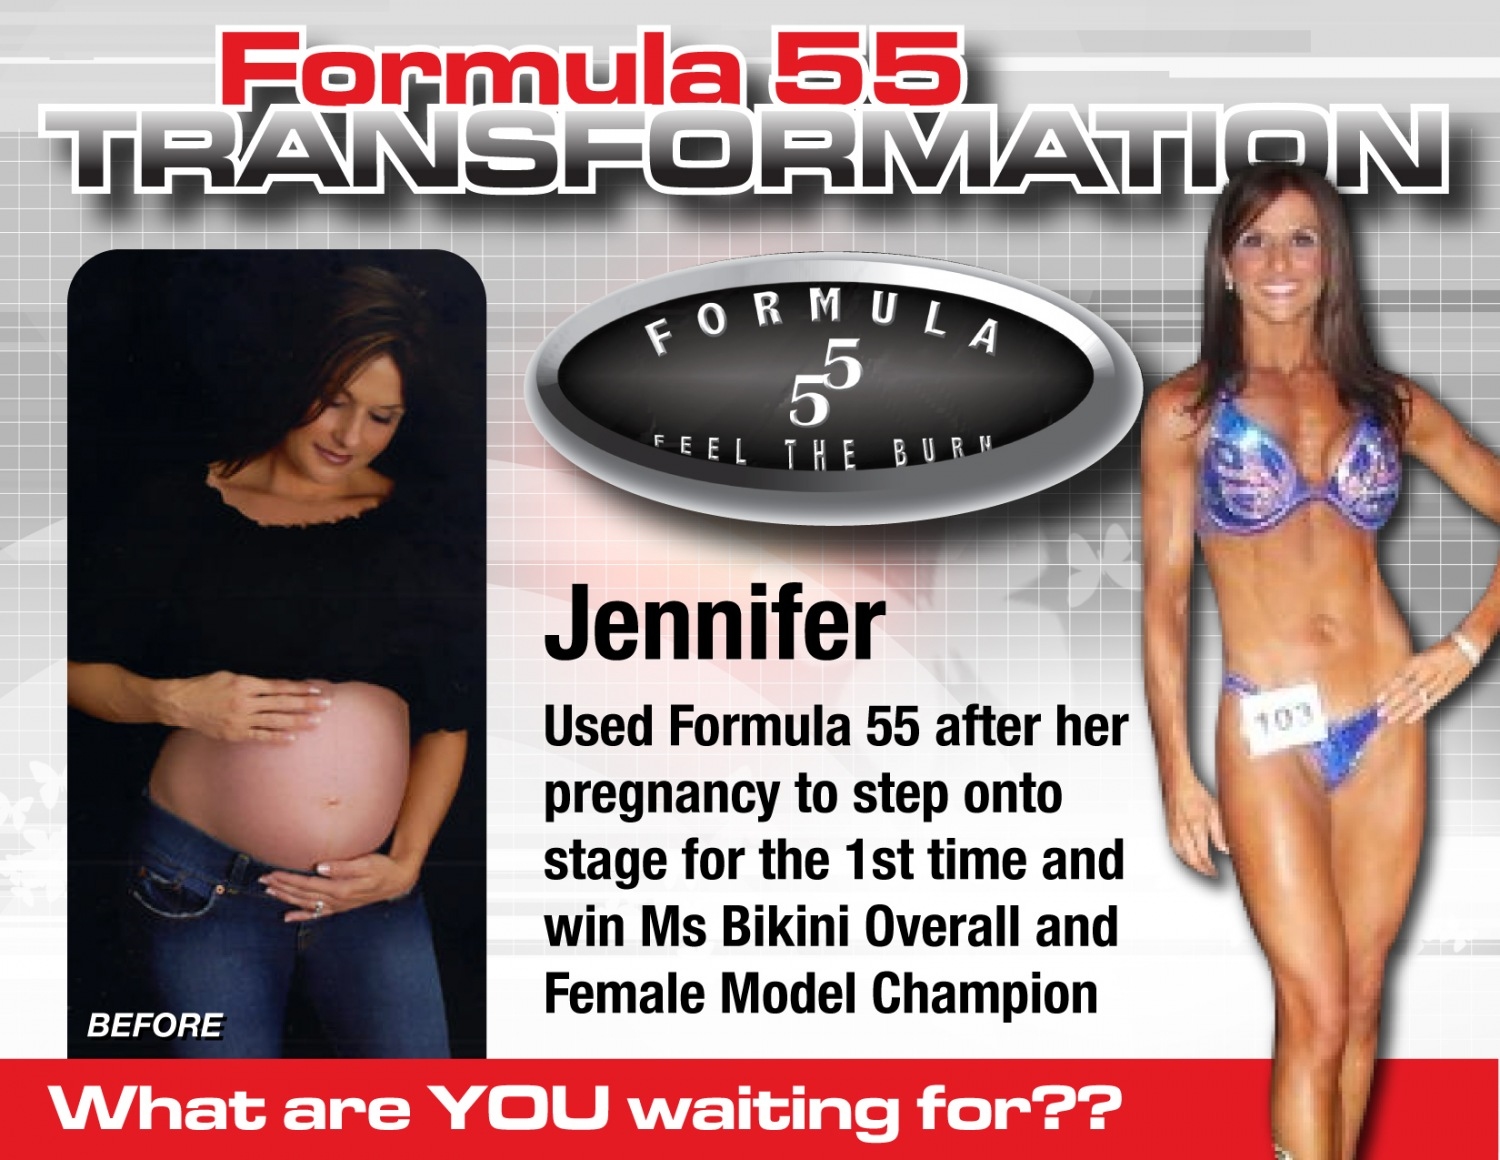 form_55_Transformation_Jennifer.jpg